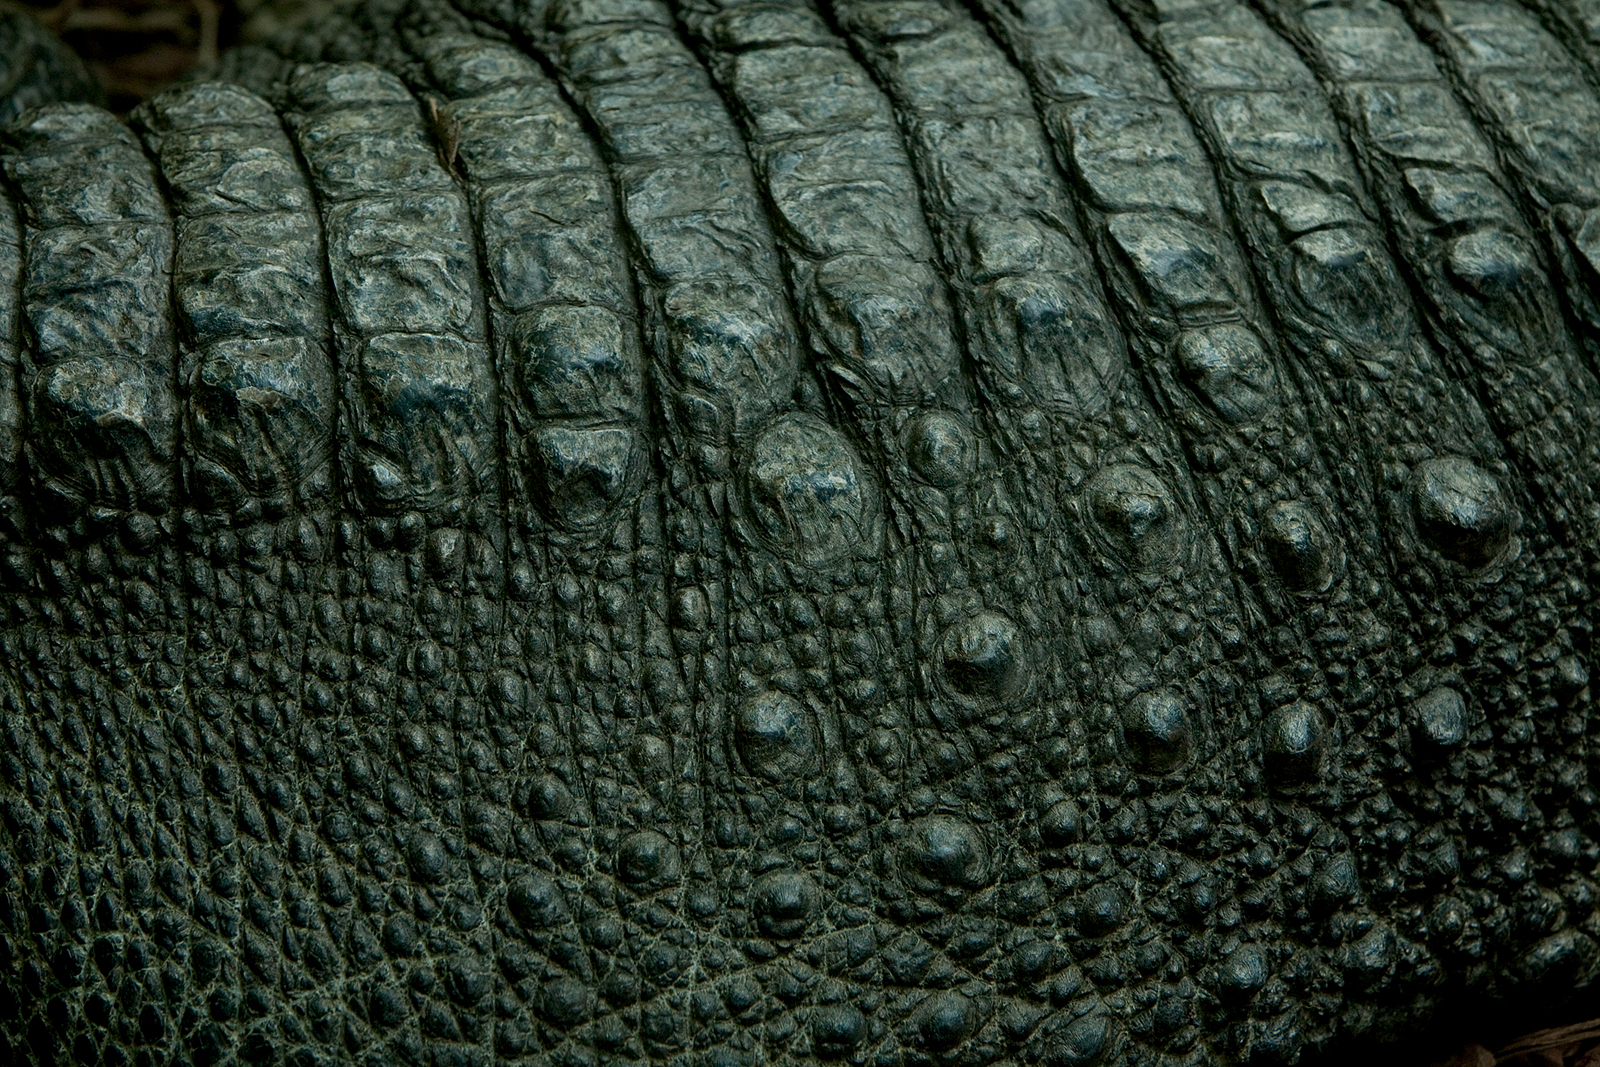 Alligator skin This one would likely bite back 1600x1067